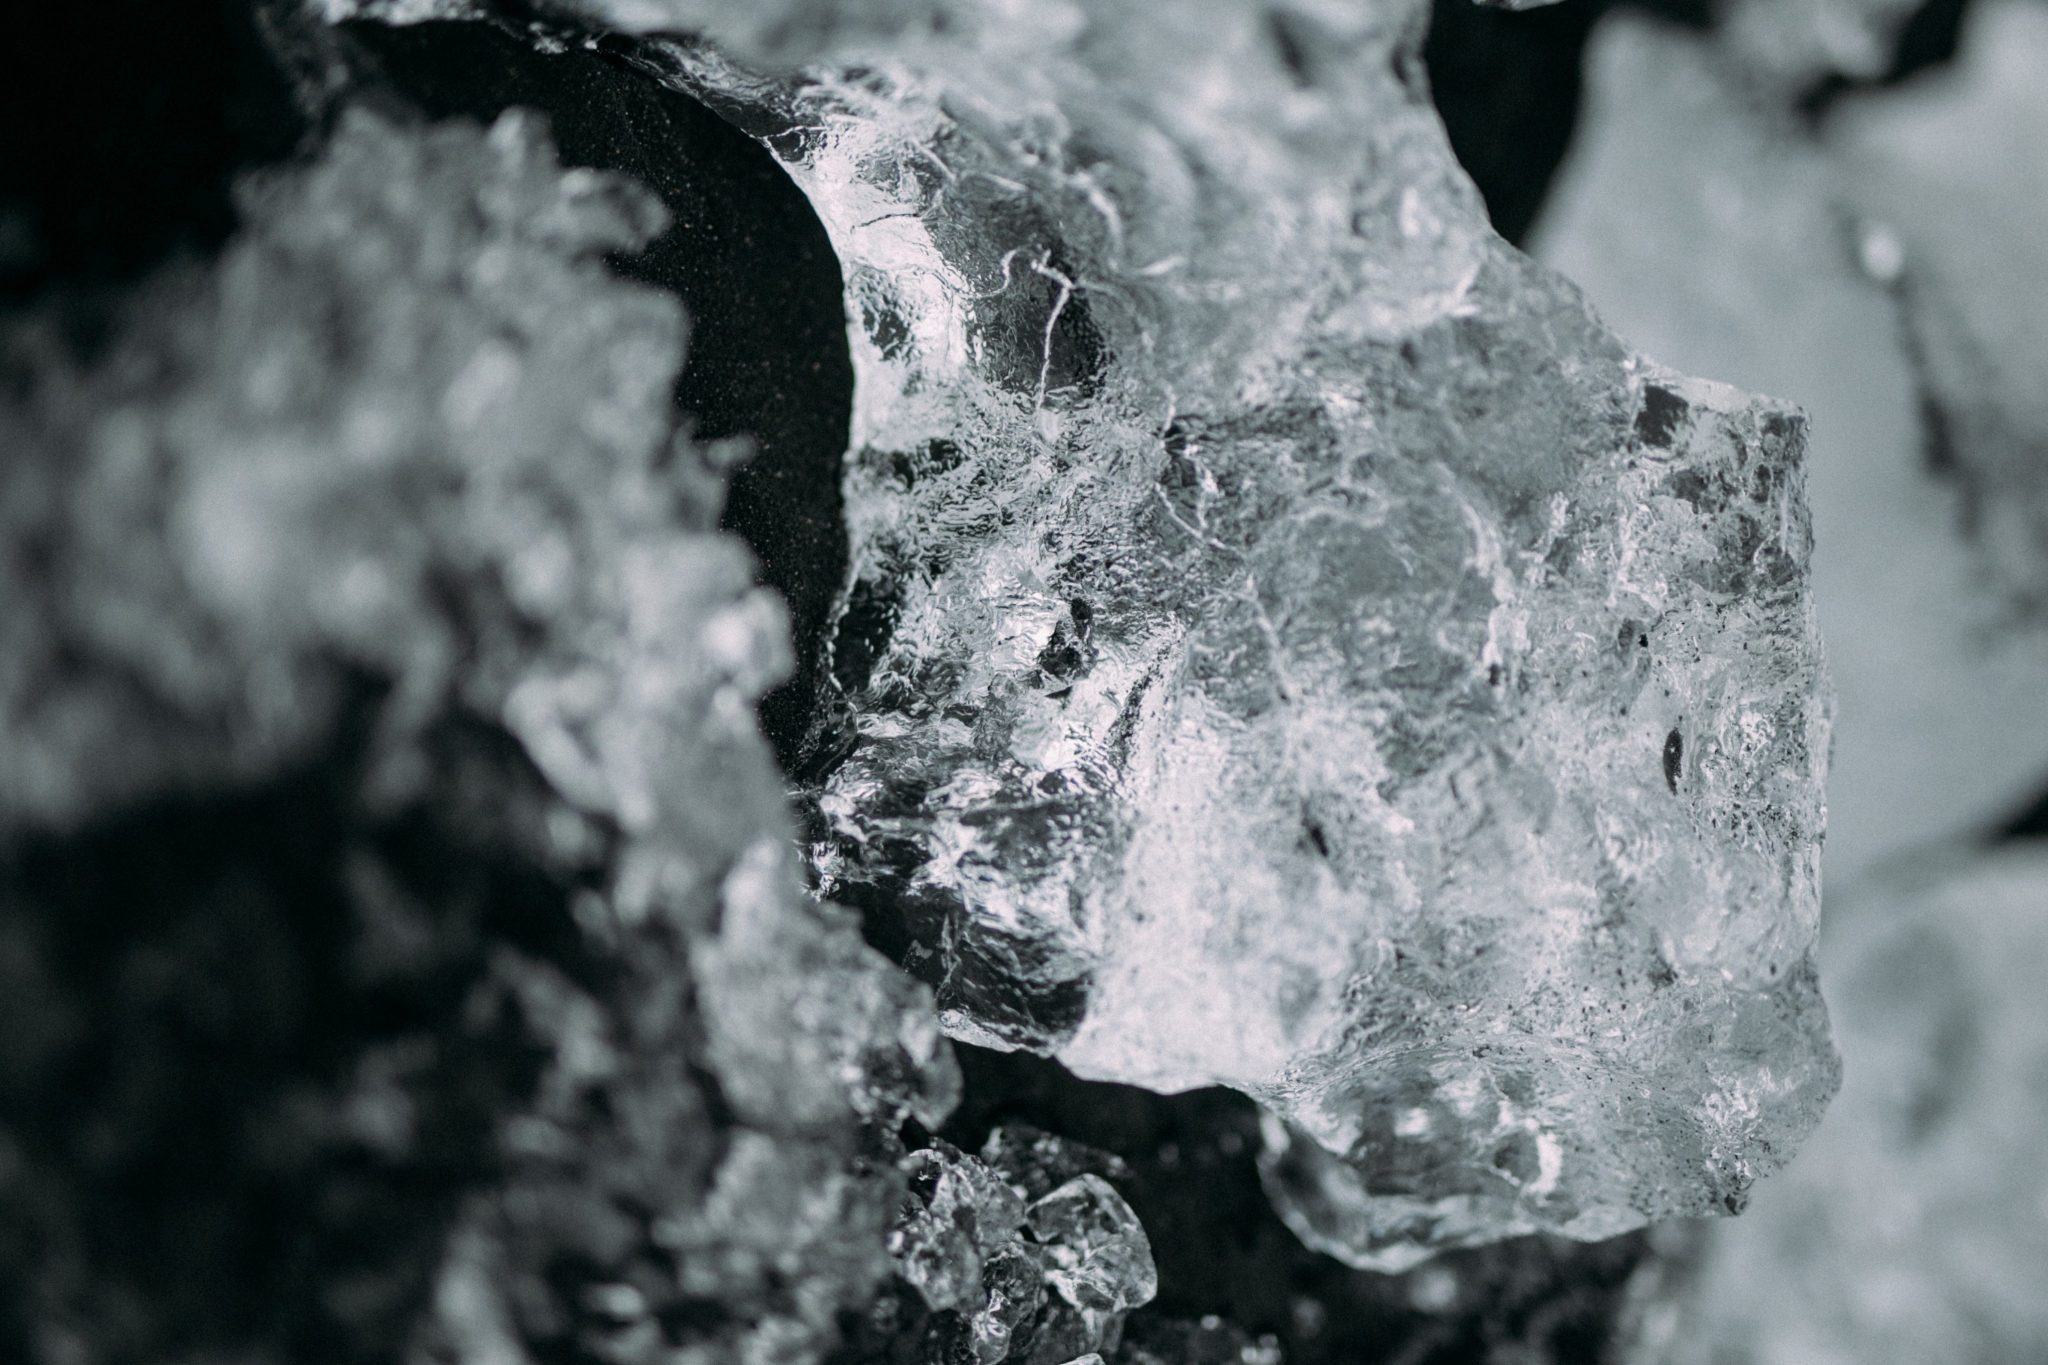 ice that causes slip and fall accidents